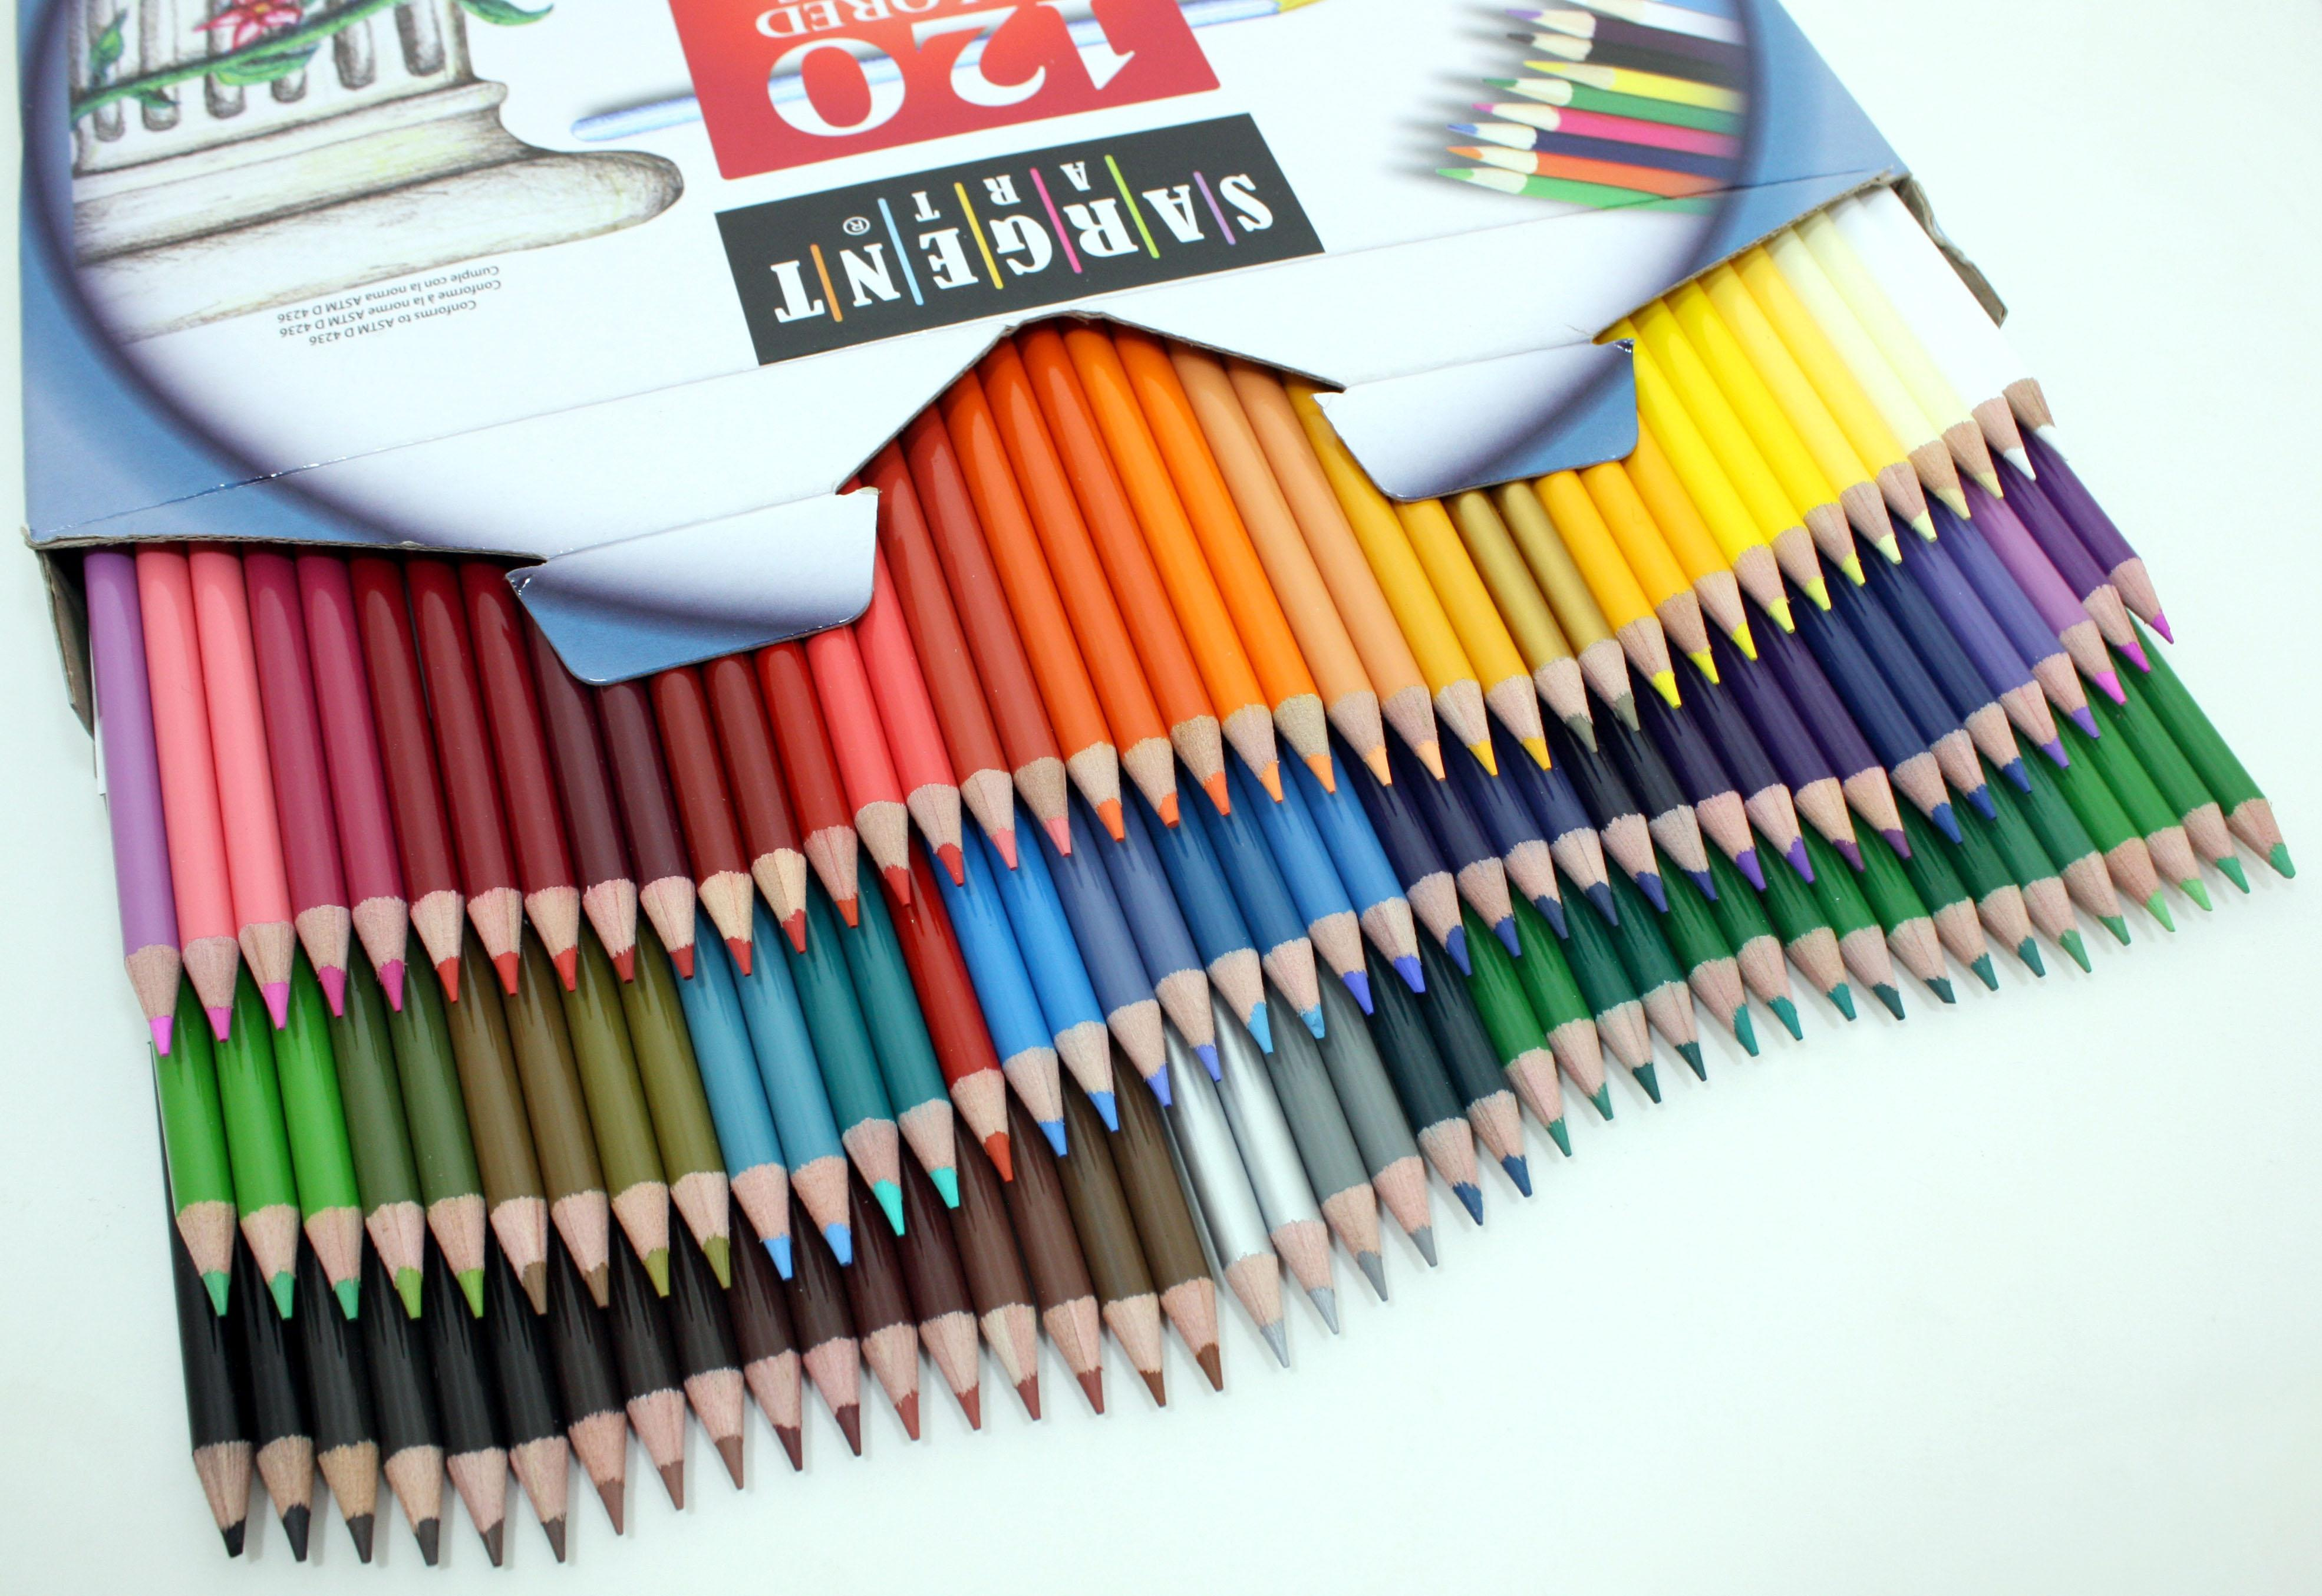 Gallery: Biggest Pack Of Colored Pencils, - DRAWING ART GALLERY